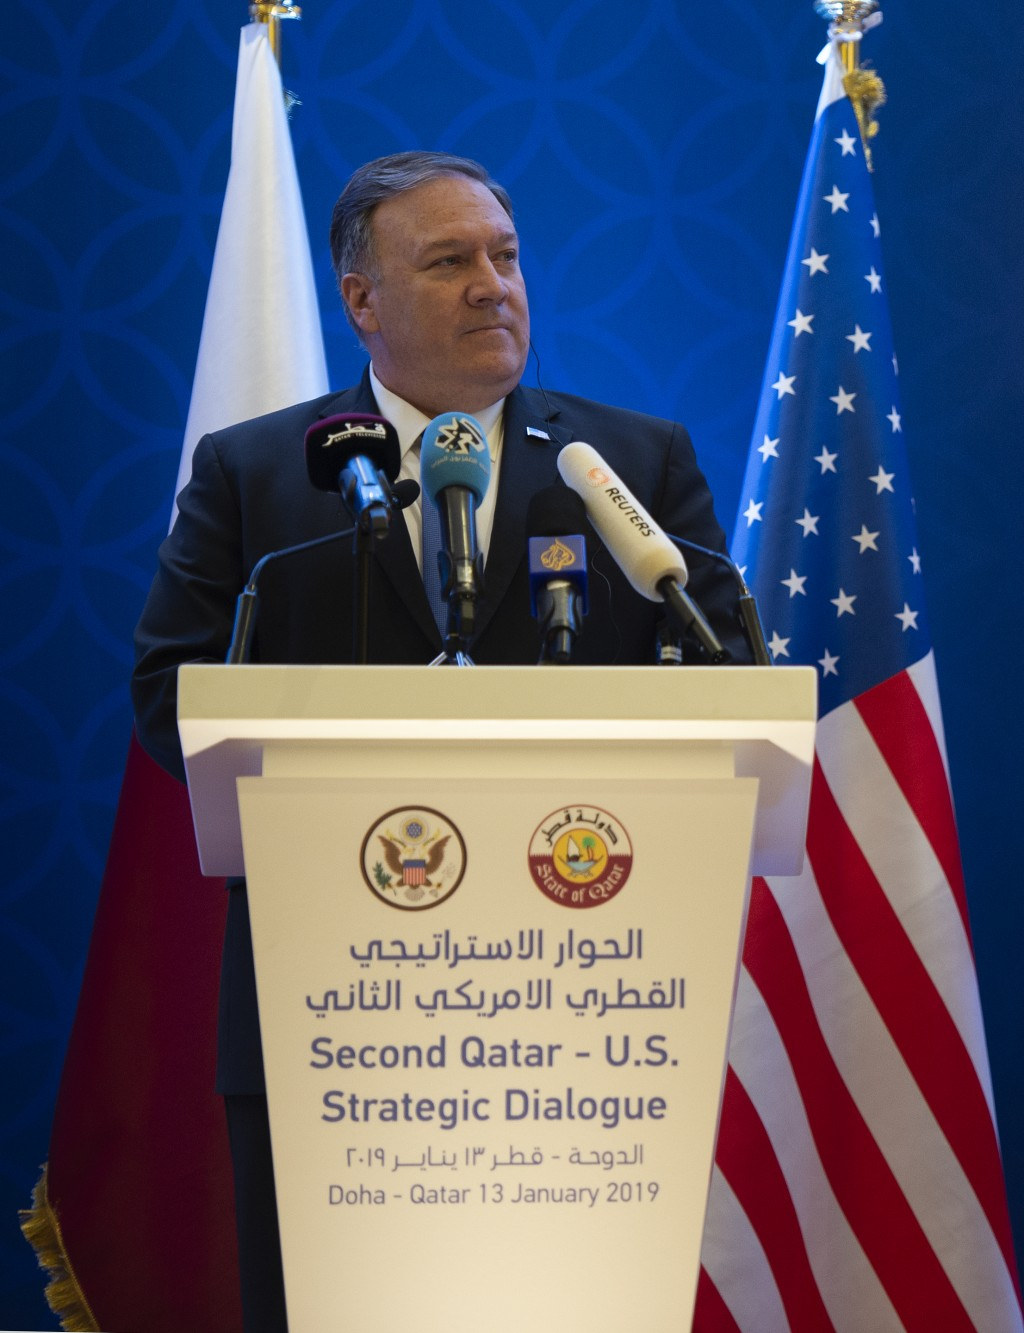 U.S. Secretary of State Mike Pompeo, holds a joint press conference with Qatari Foreign Minister Sheikh Mohammed bin Abdulrahman Al Thani, at the Sher